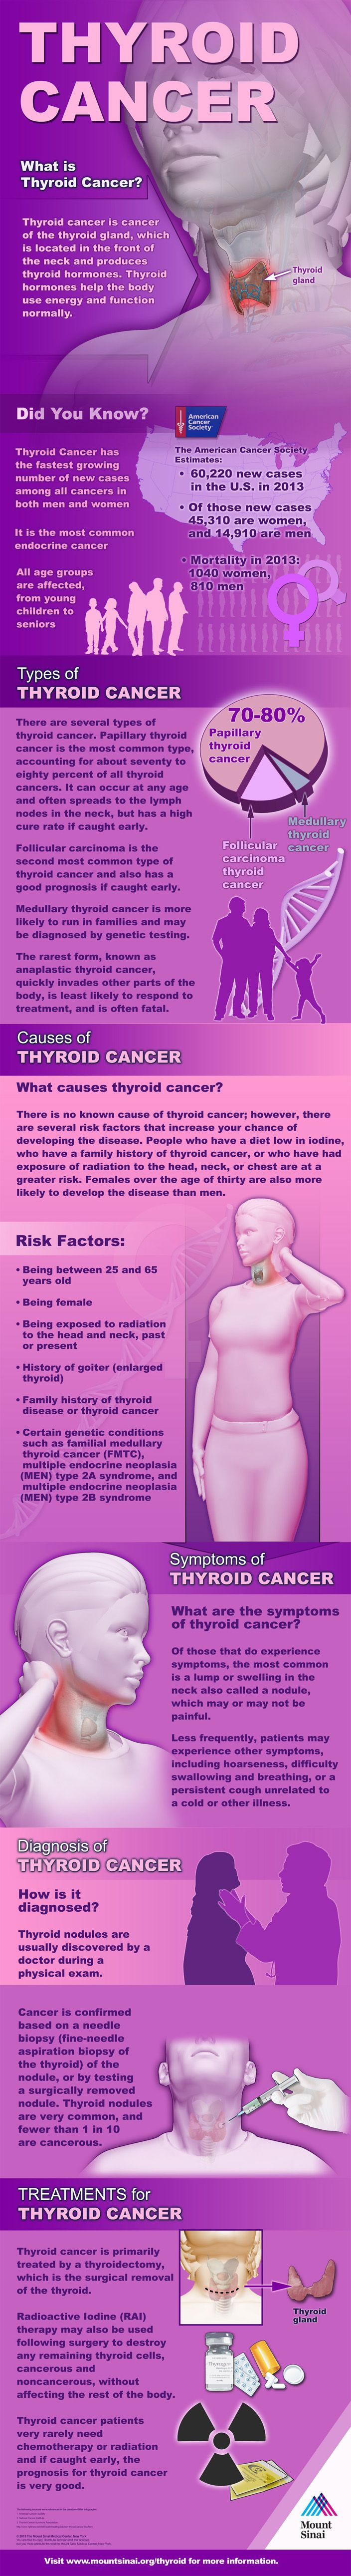 More than 60,200 new cases of thyroid cancer are diagnosed each year in the U.S. (infographic)